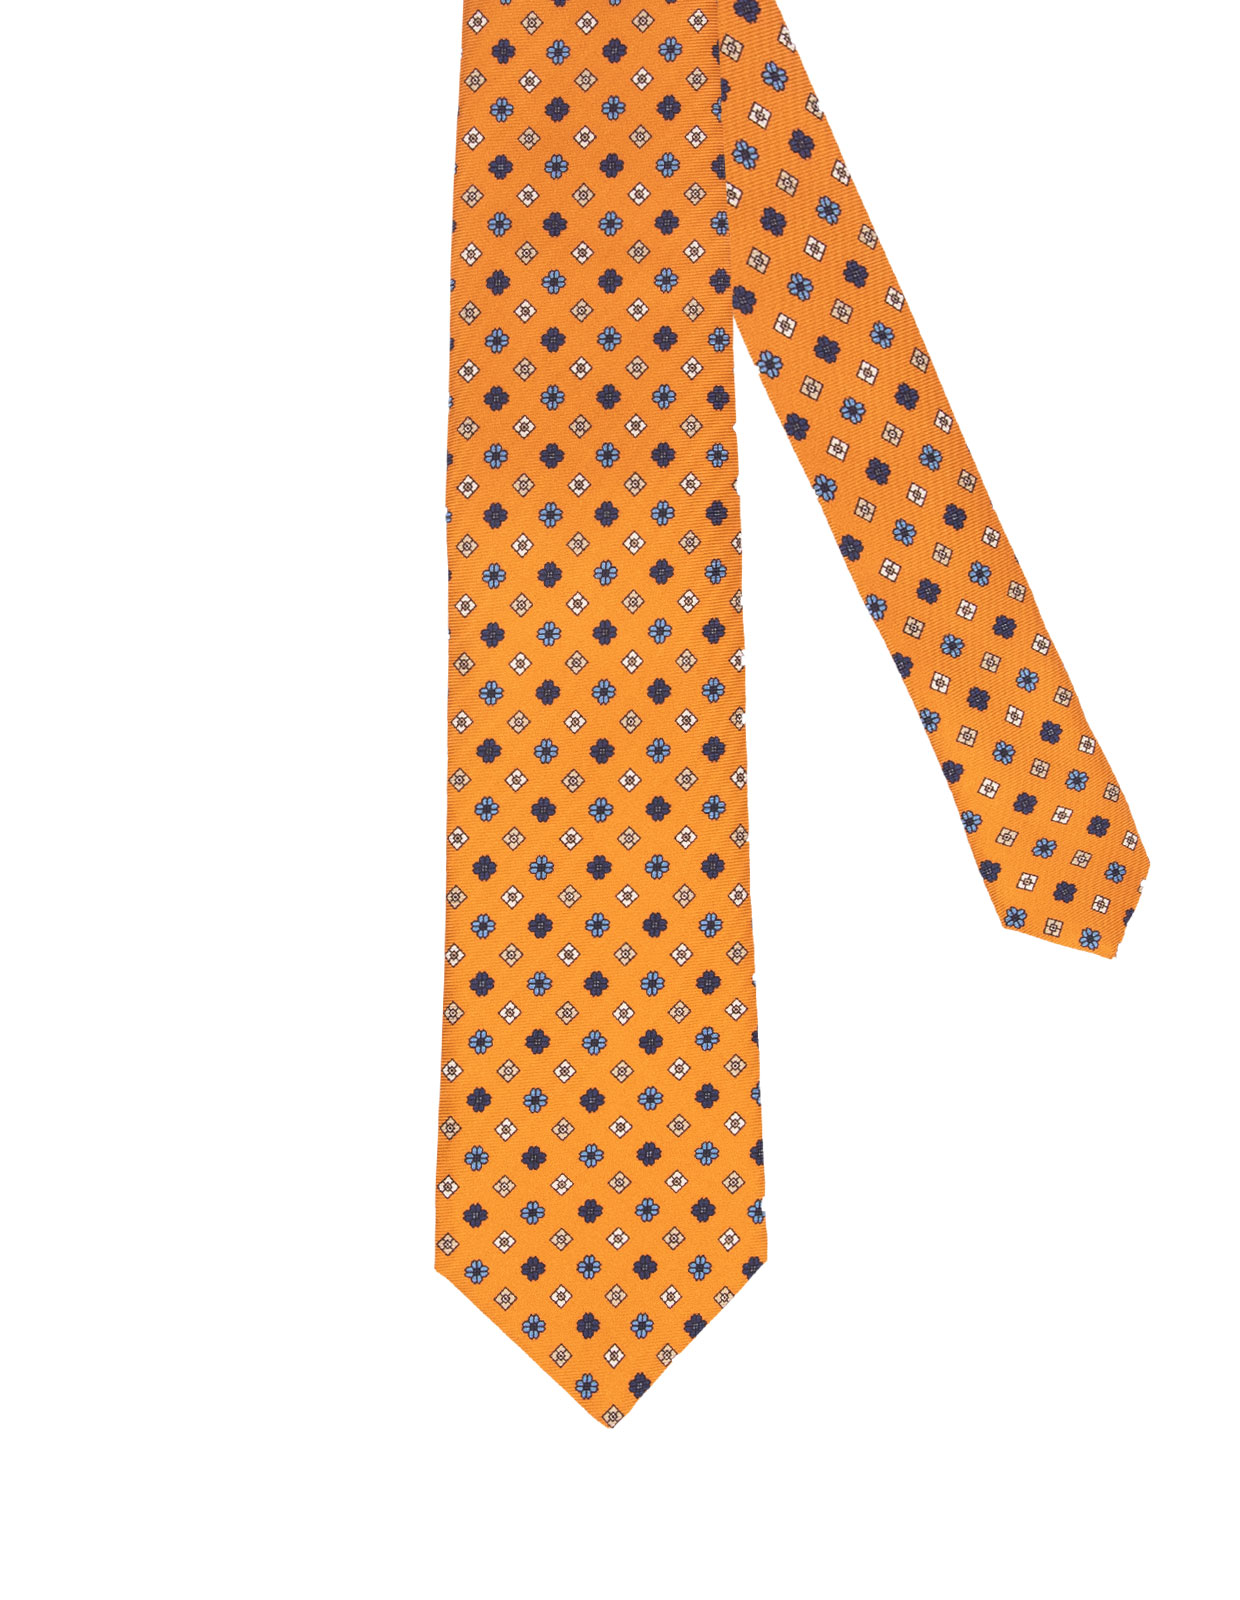 Printed Silk Tie Orange